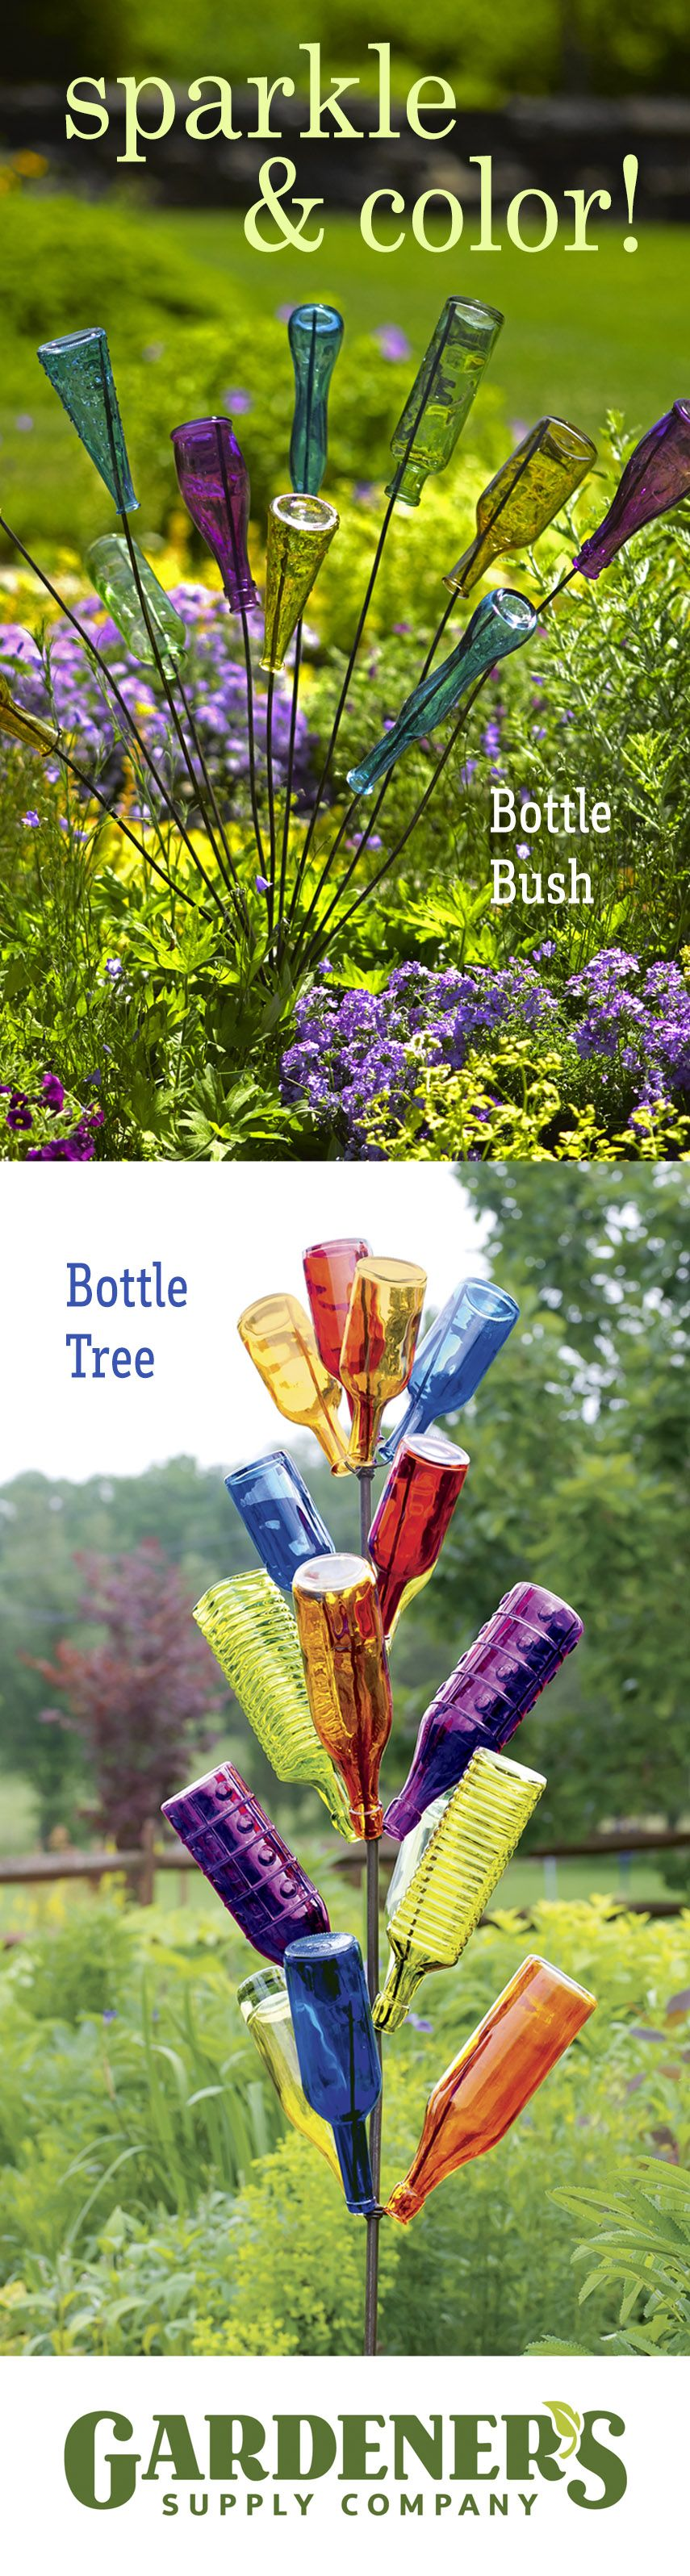 The Bottle Tree: A Sparkling Glass Sculpture that You Design ...